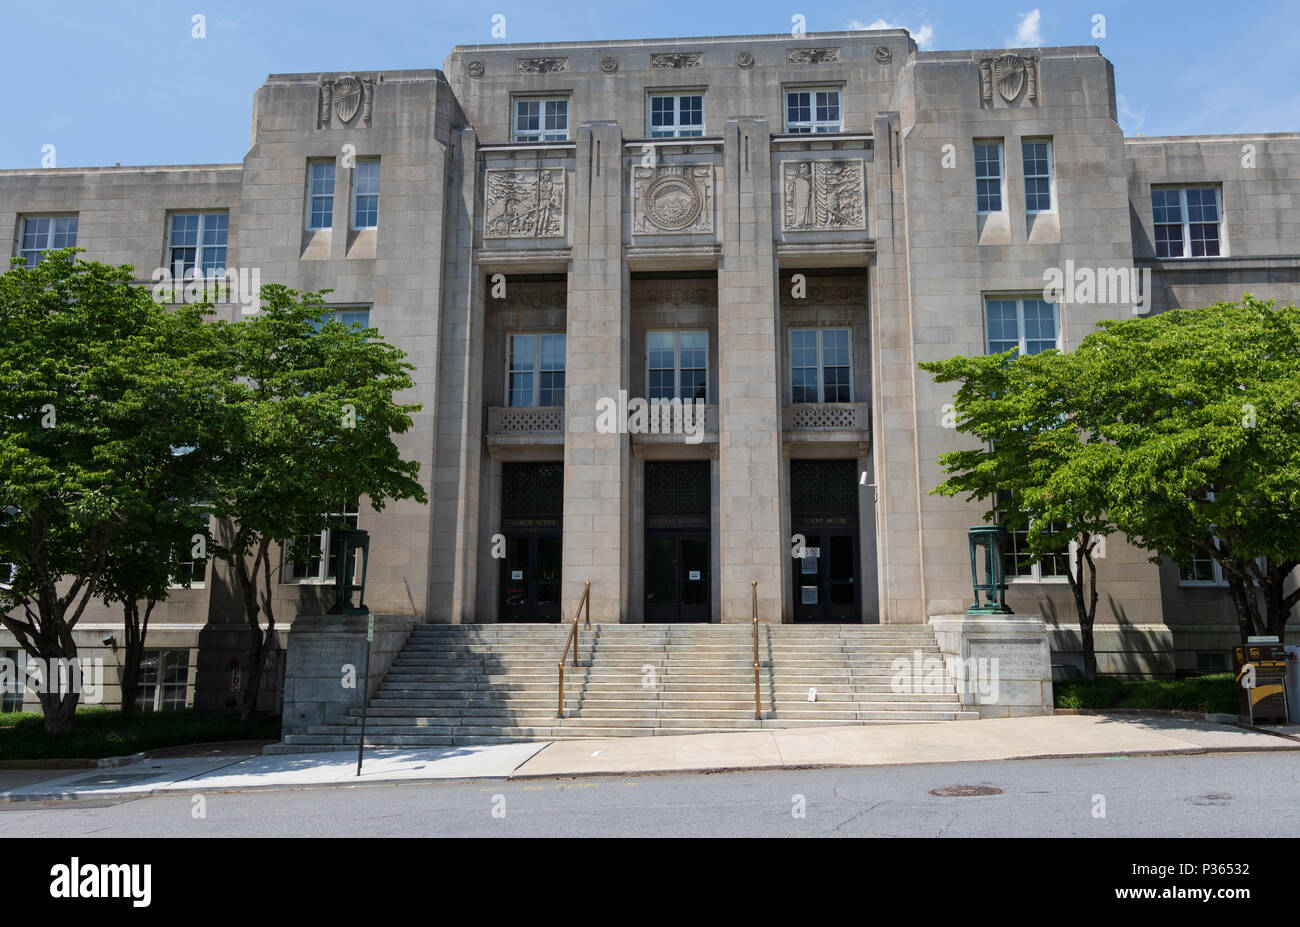 ASHEVILLE, NC, USA-10 JUNE 18:  The federal courthouse on Otis St. in downtown Asheville. - Stock Image